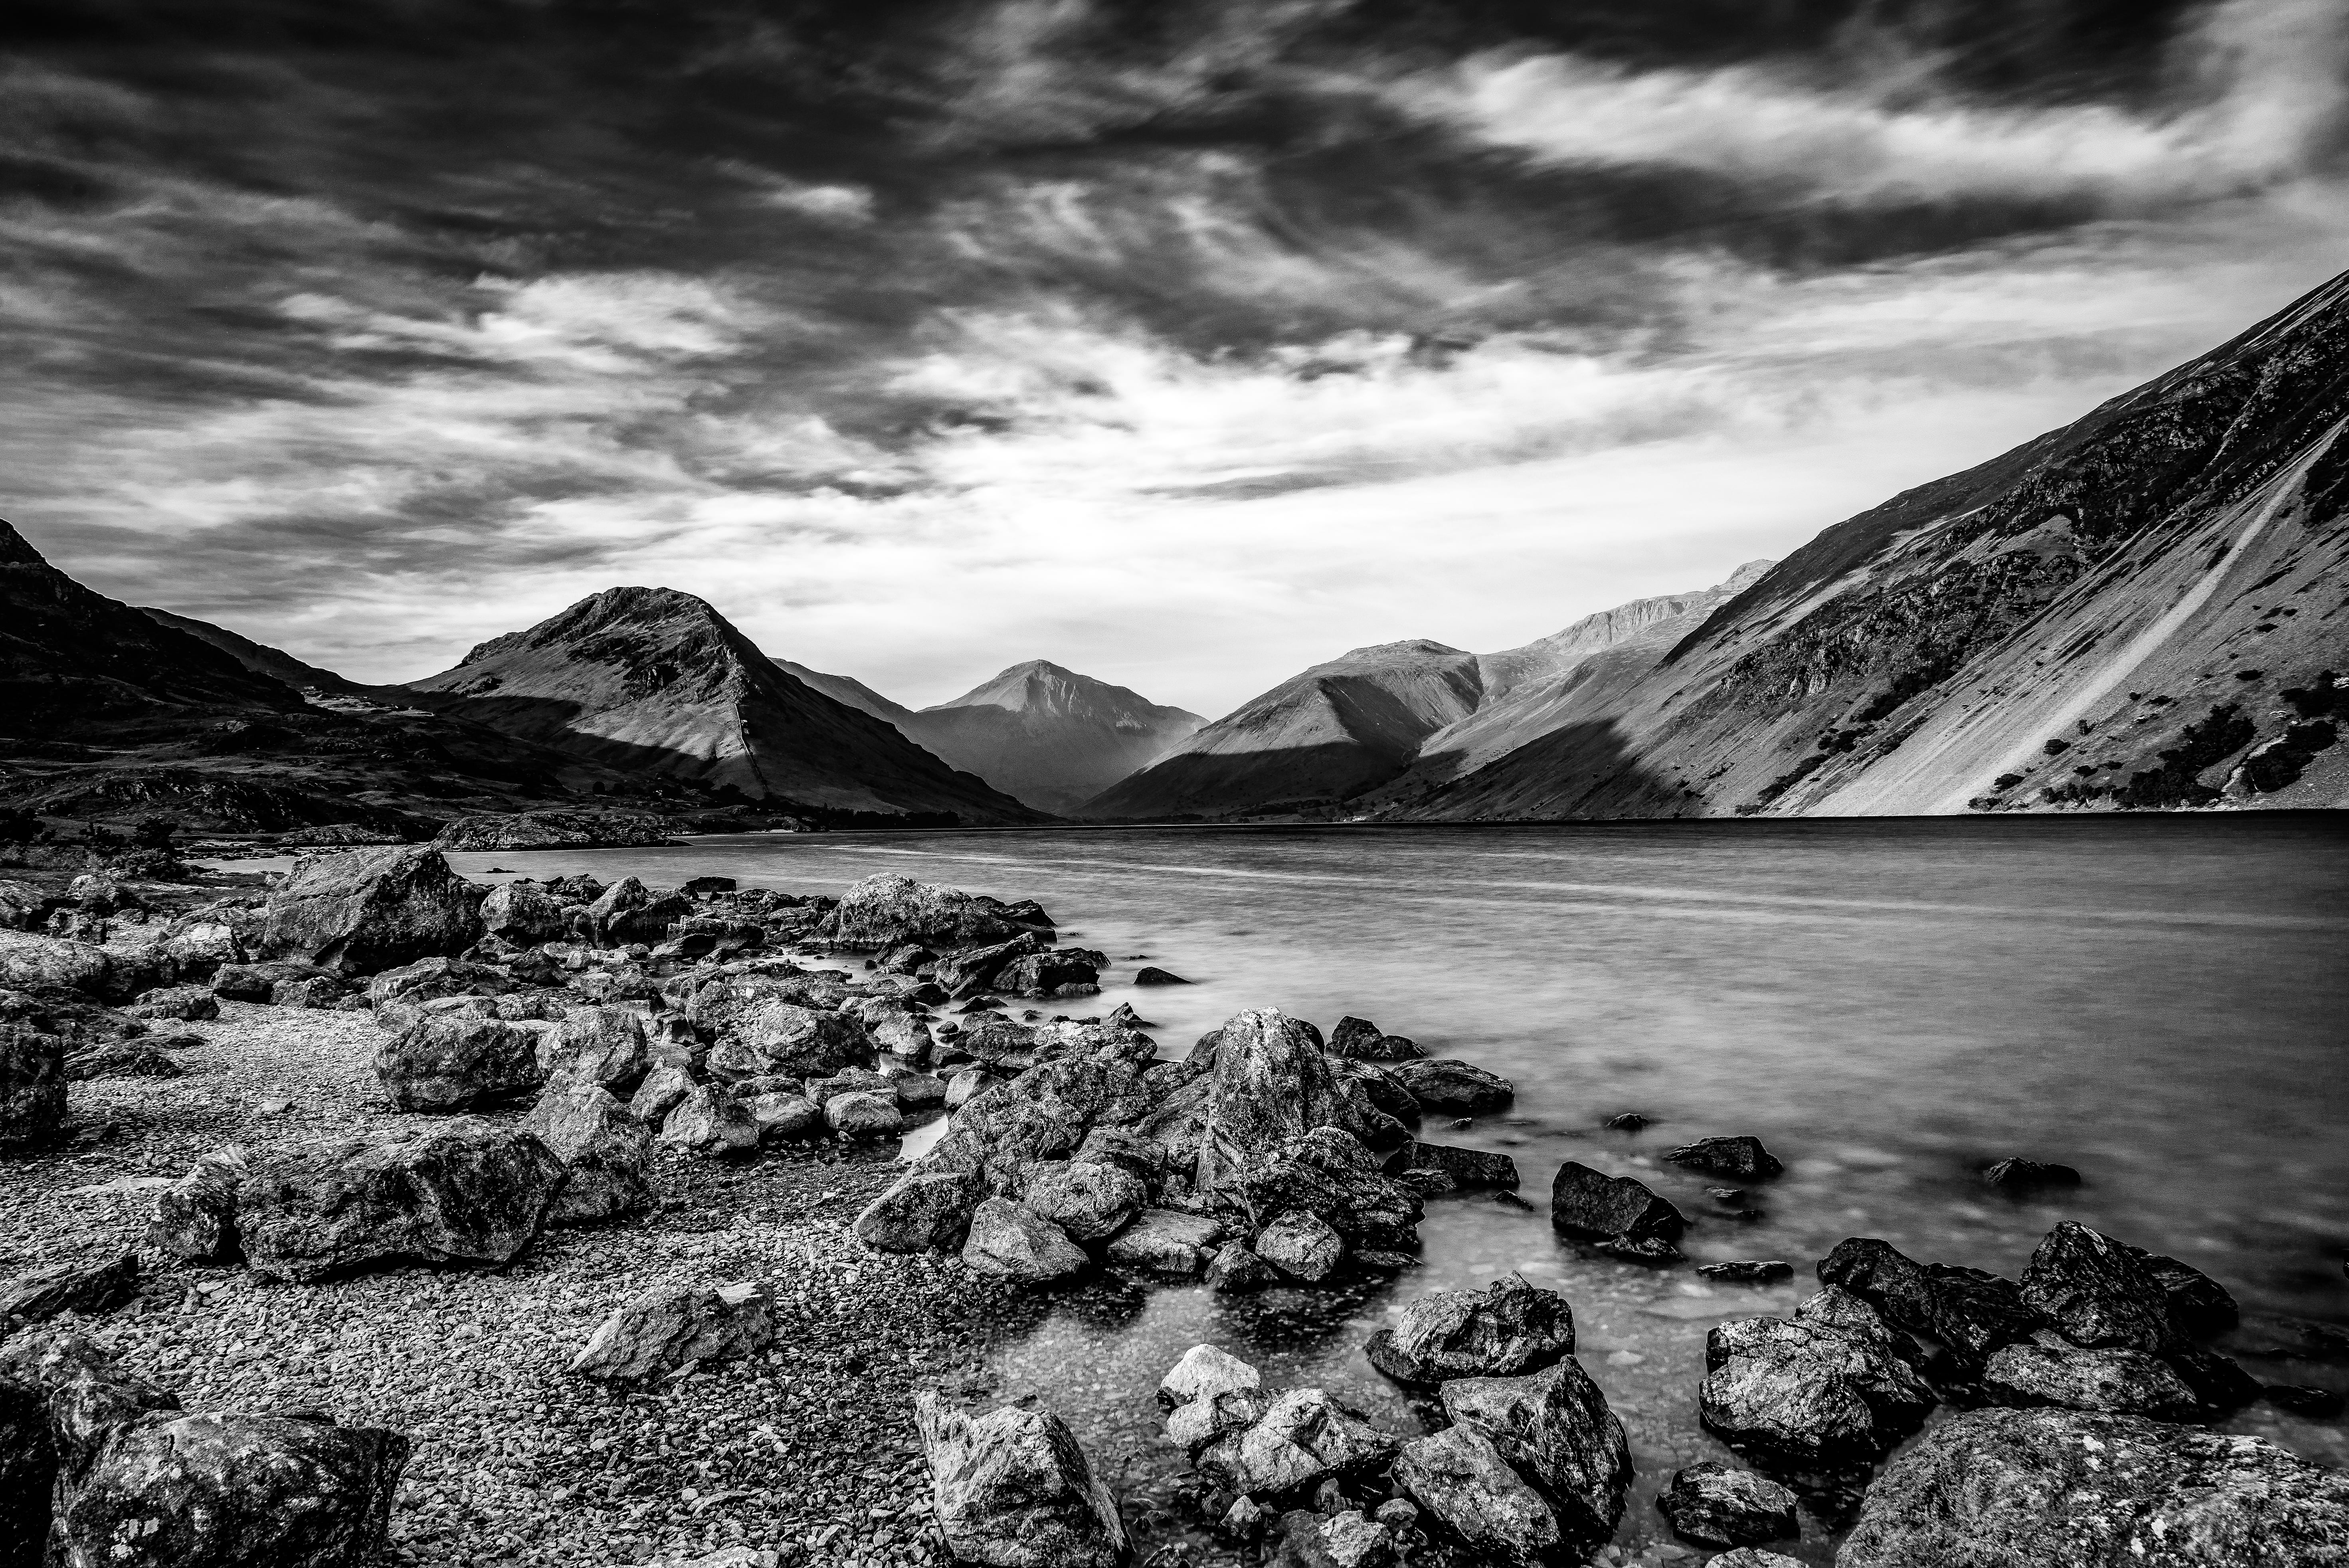 Iphone 2g Wallpaper For Iphone X Grayscale Photo Of Mountain Beside Body Of Water Hd